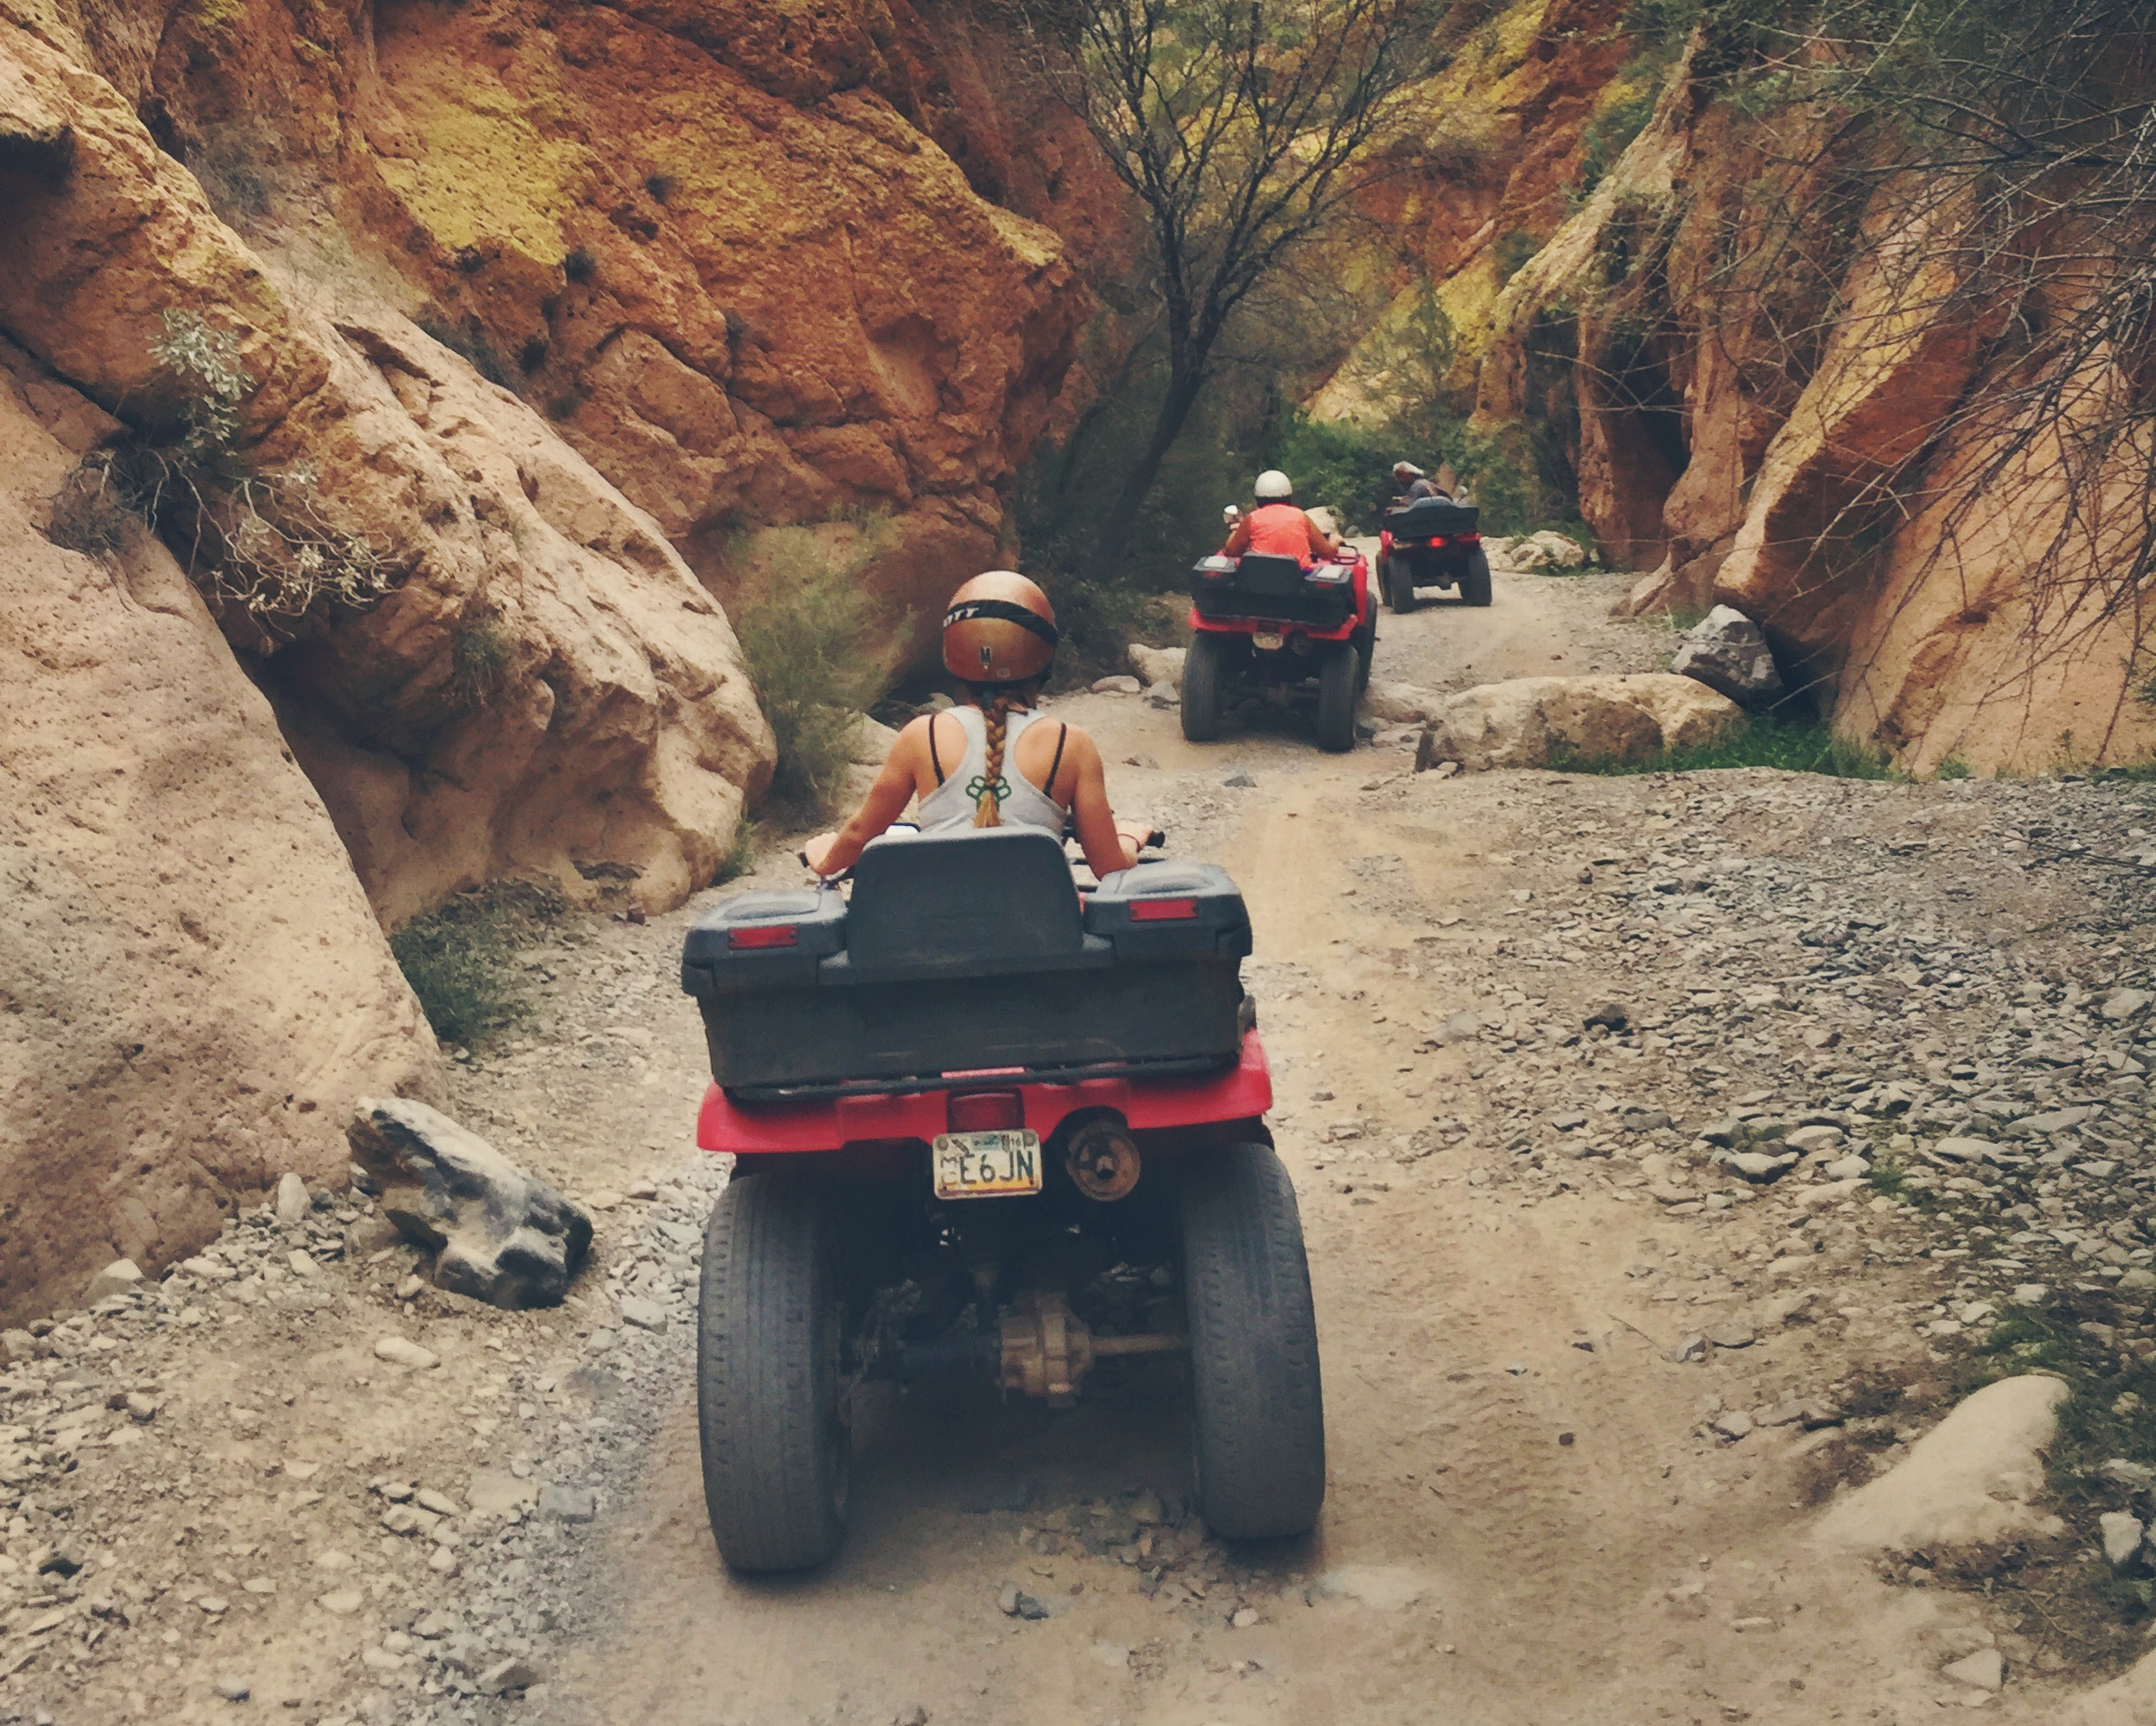 Finding our way into Box Canyon